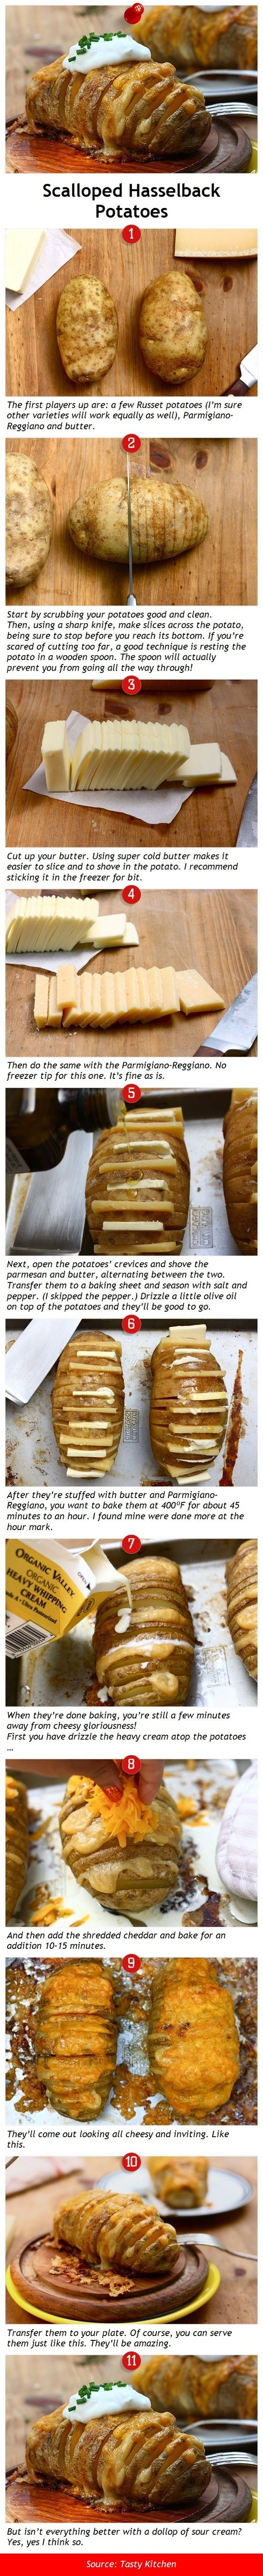 Don't think I'd eat it but seems pretty easy to make..